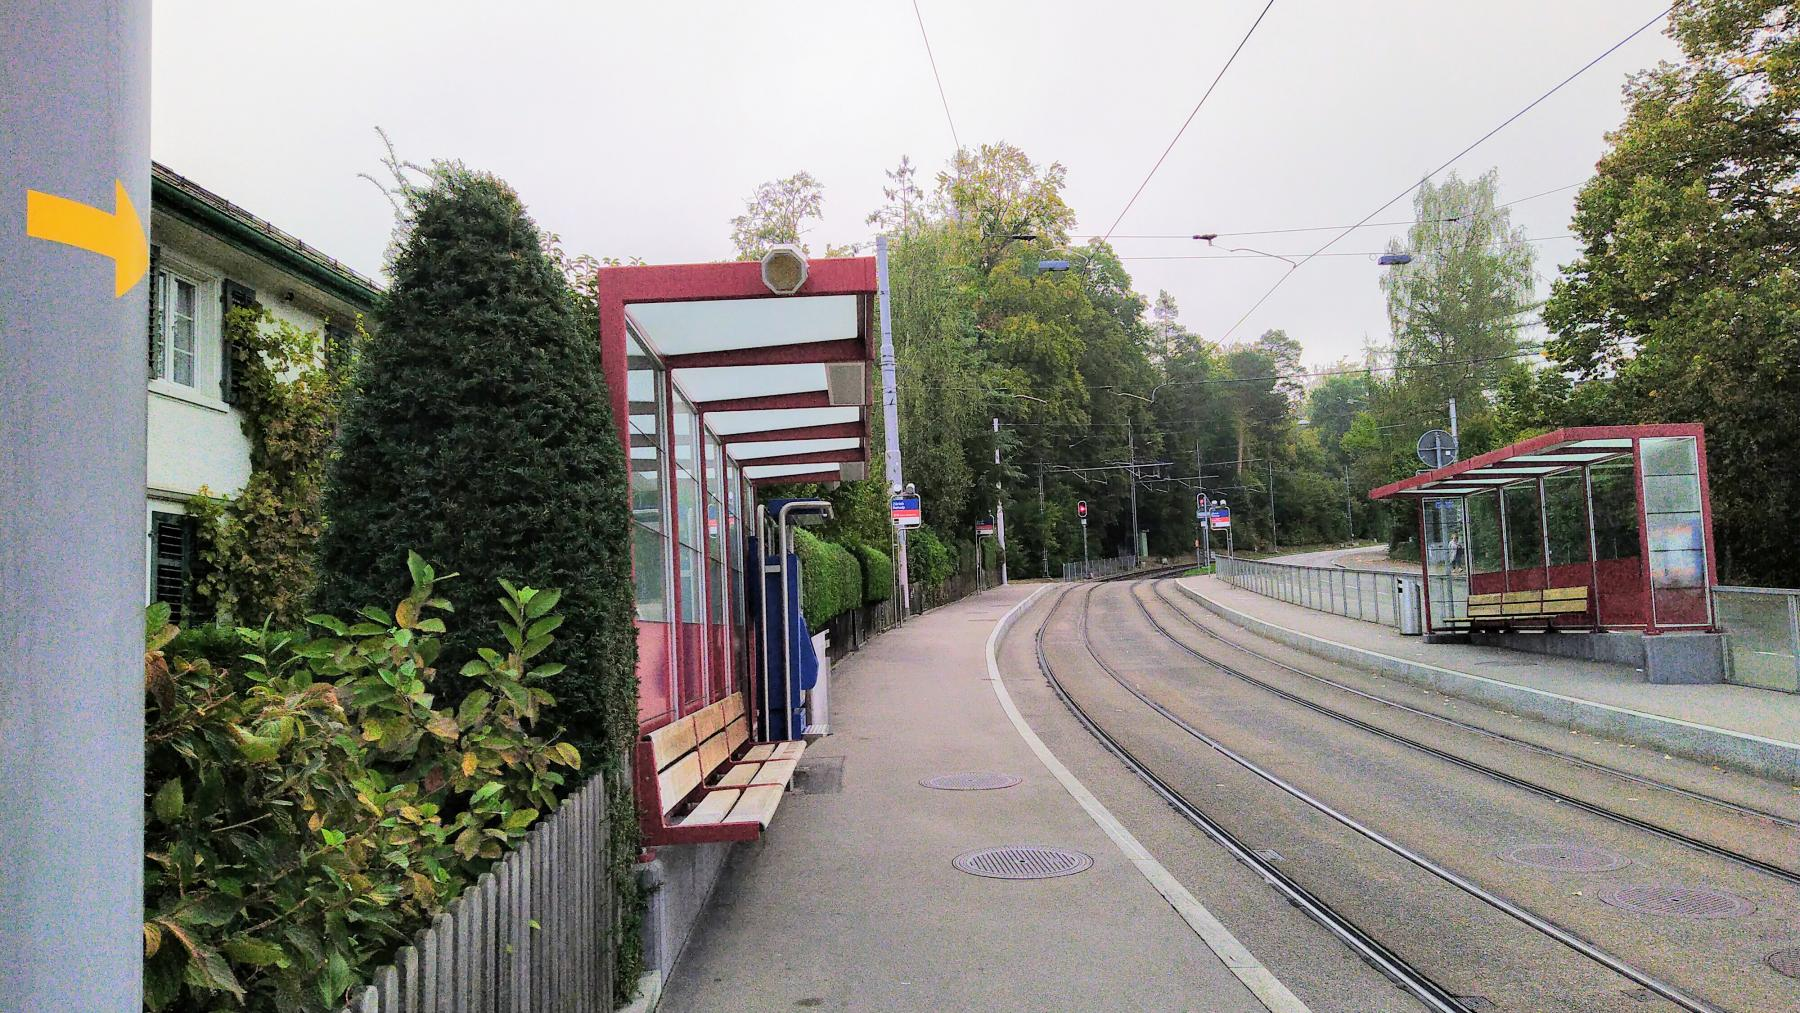 01 Rehalp Forchbahn-Station